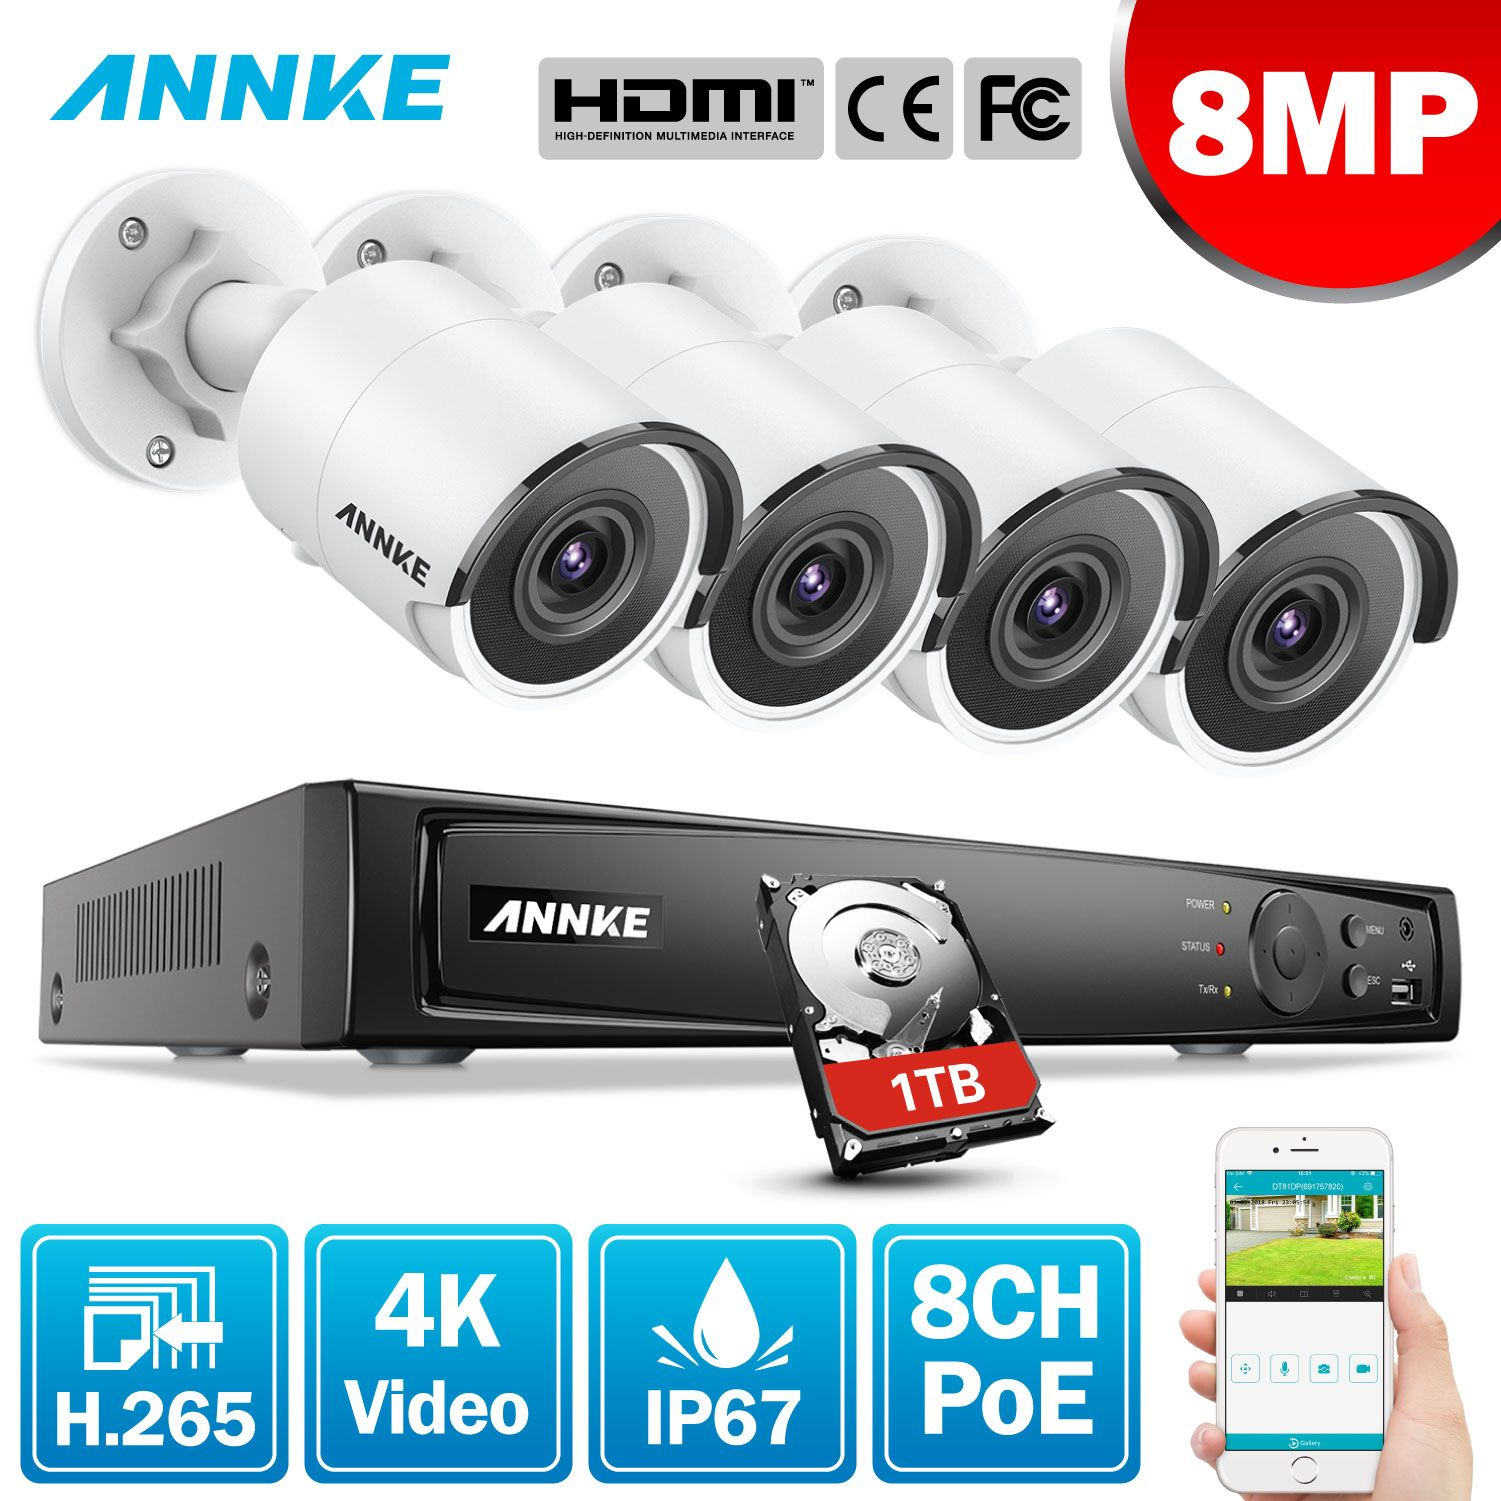 ANNKE 8CH 8MP Ultra HD PoE Netzwerk Video Security System 4K H.265 Surveillance NVR 4x8 megapixel HD IP67 POE CCTV Kugel Kameras